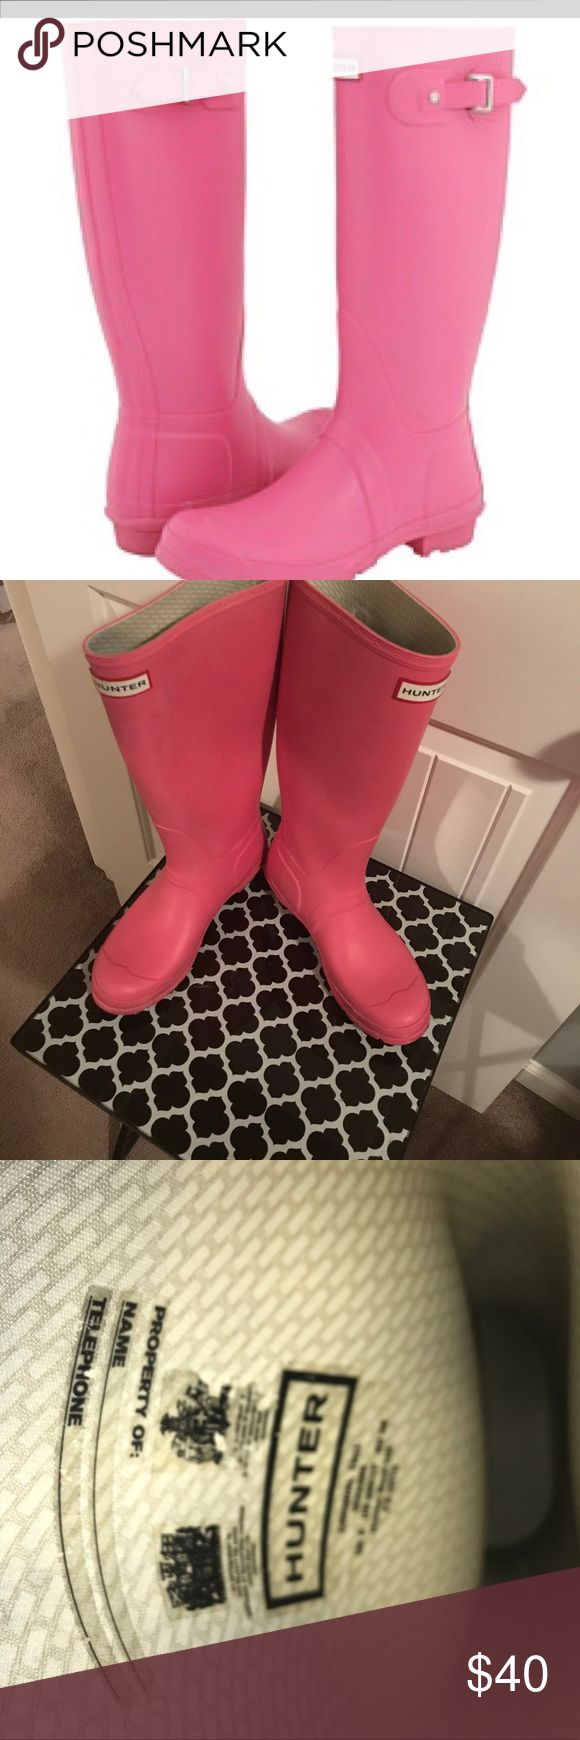 Tall hunter rain boots Pre owned, worn rain boots, but still in good condition. There is a small yellow highlighter mark on the back (in picture) Hunter Boots Shoes Winter & Rain Boots